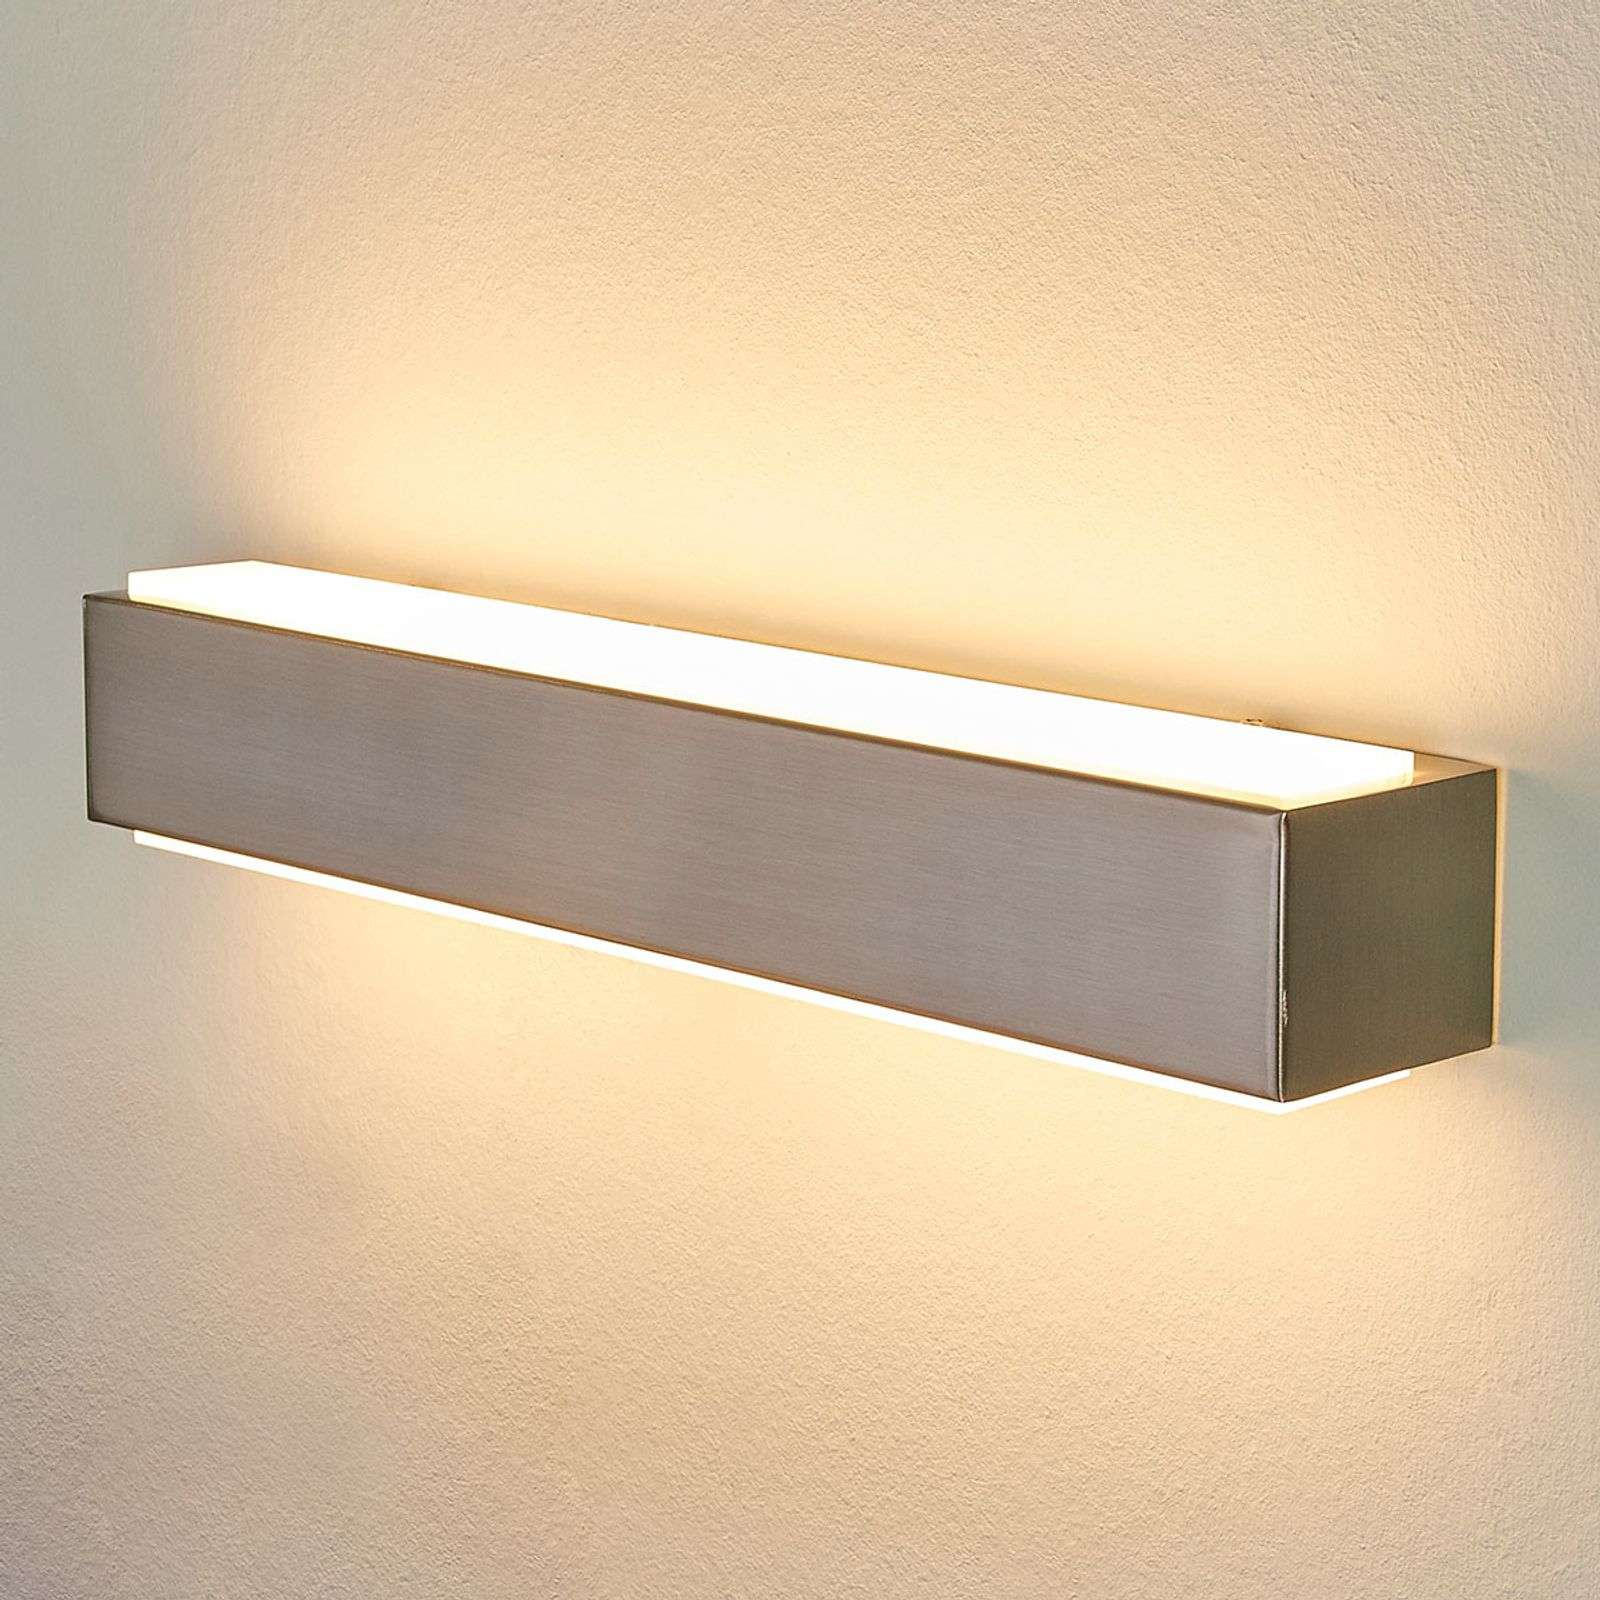 Applique murale LED couleur nickel Quentis, 40 cm